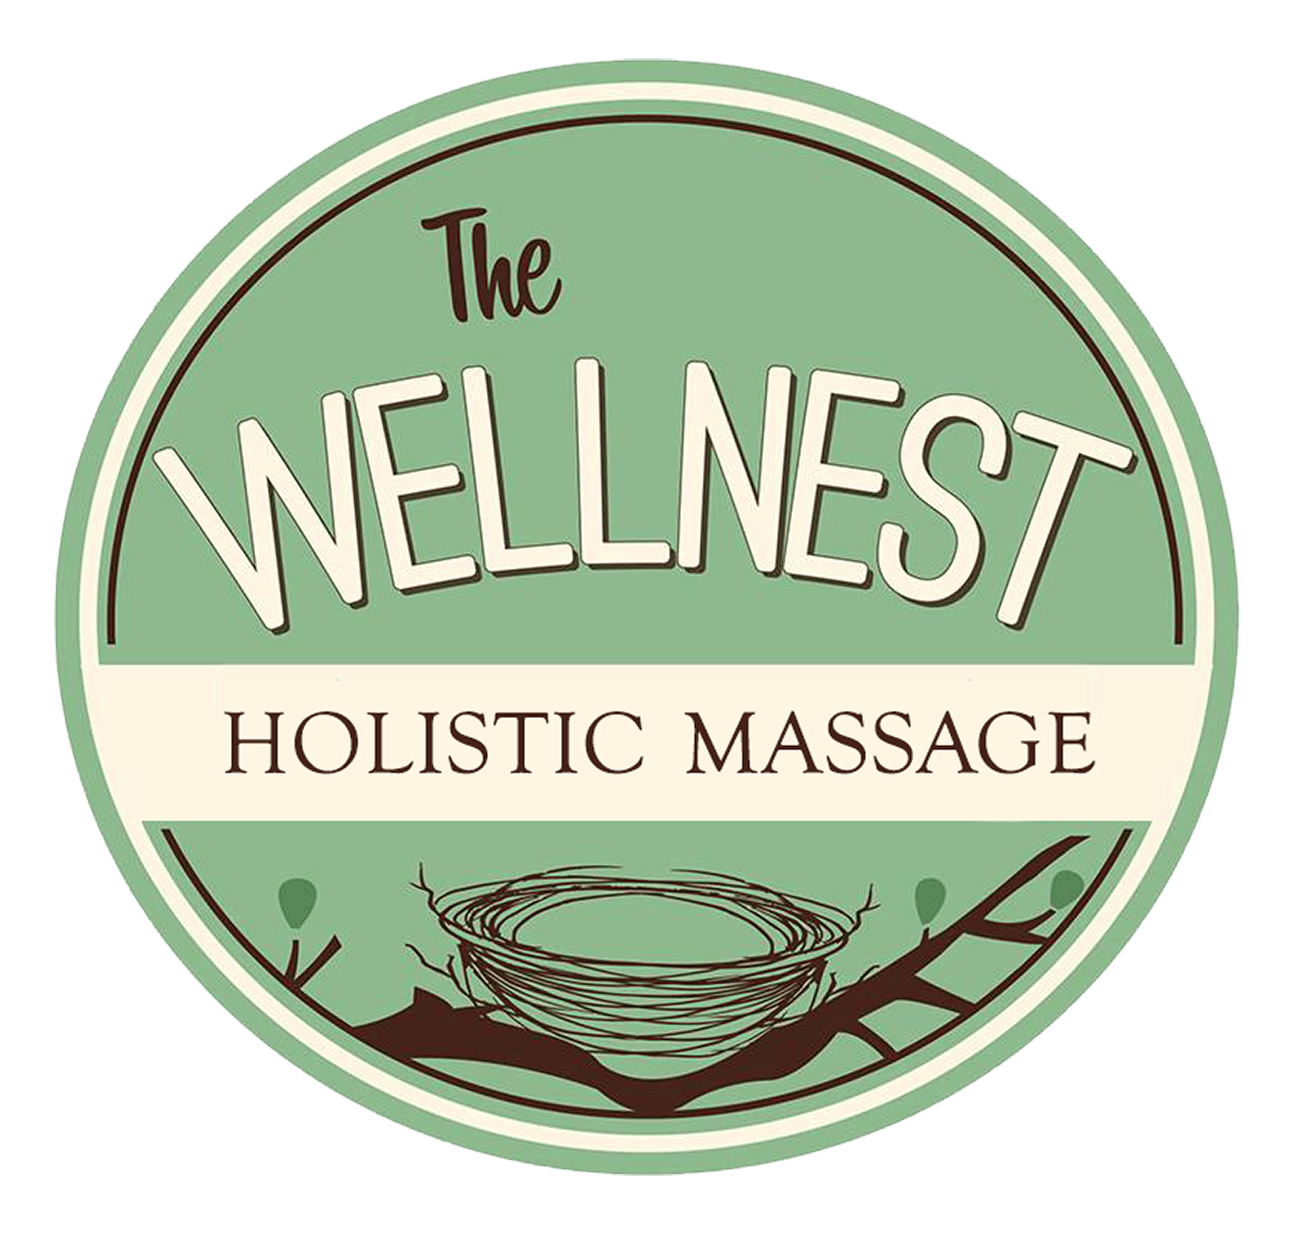 The WellNest Holistic Massage